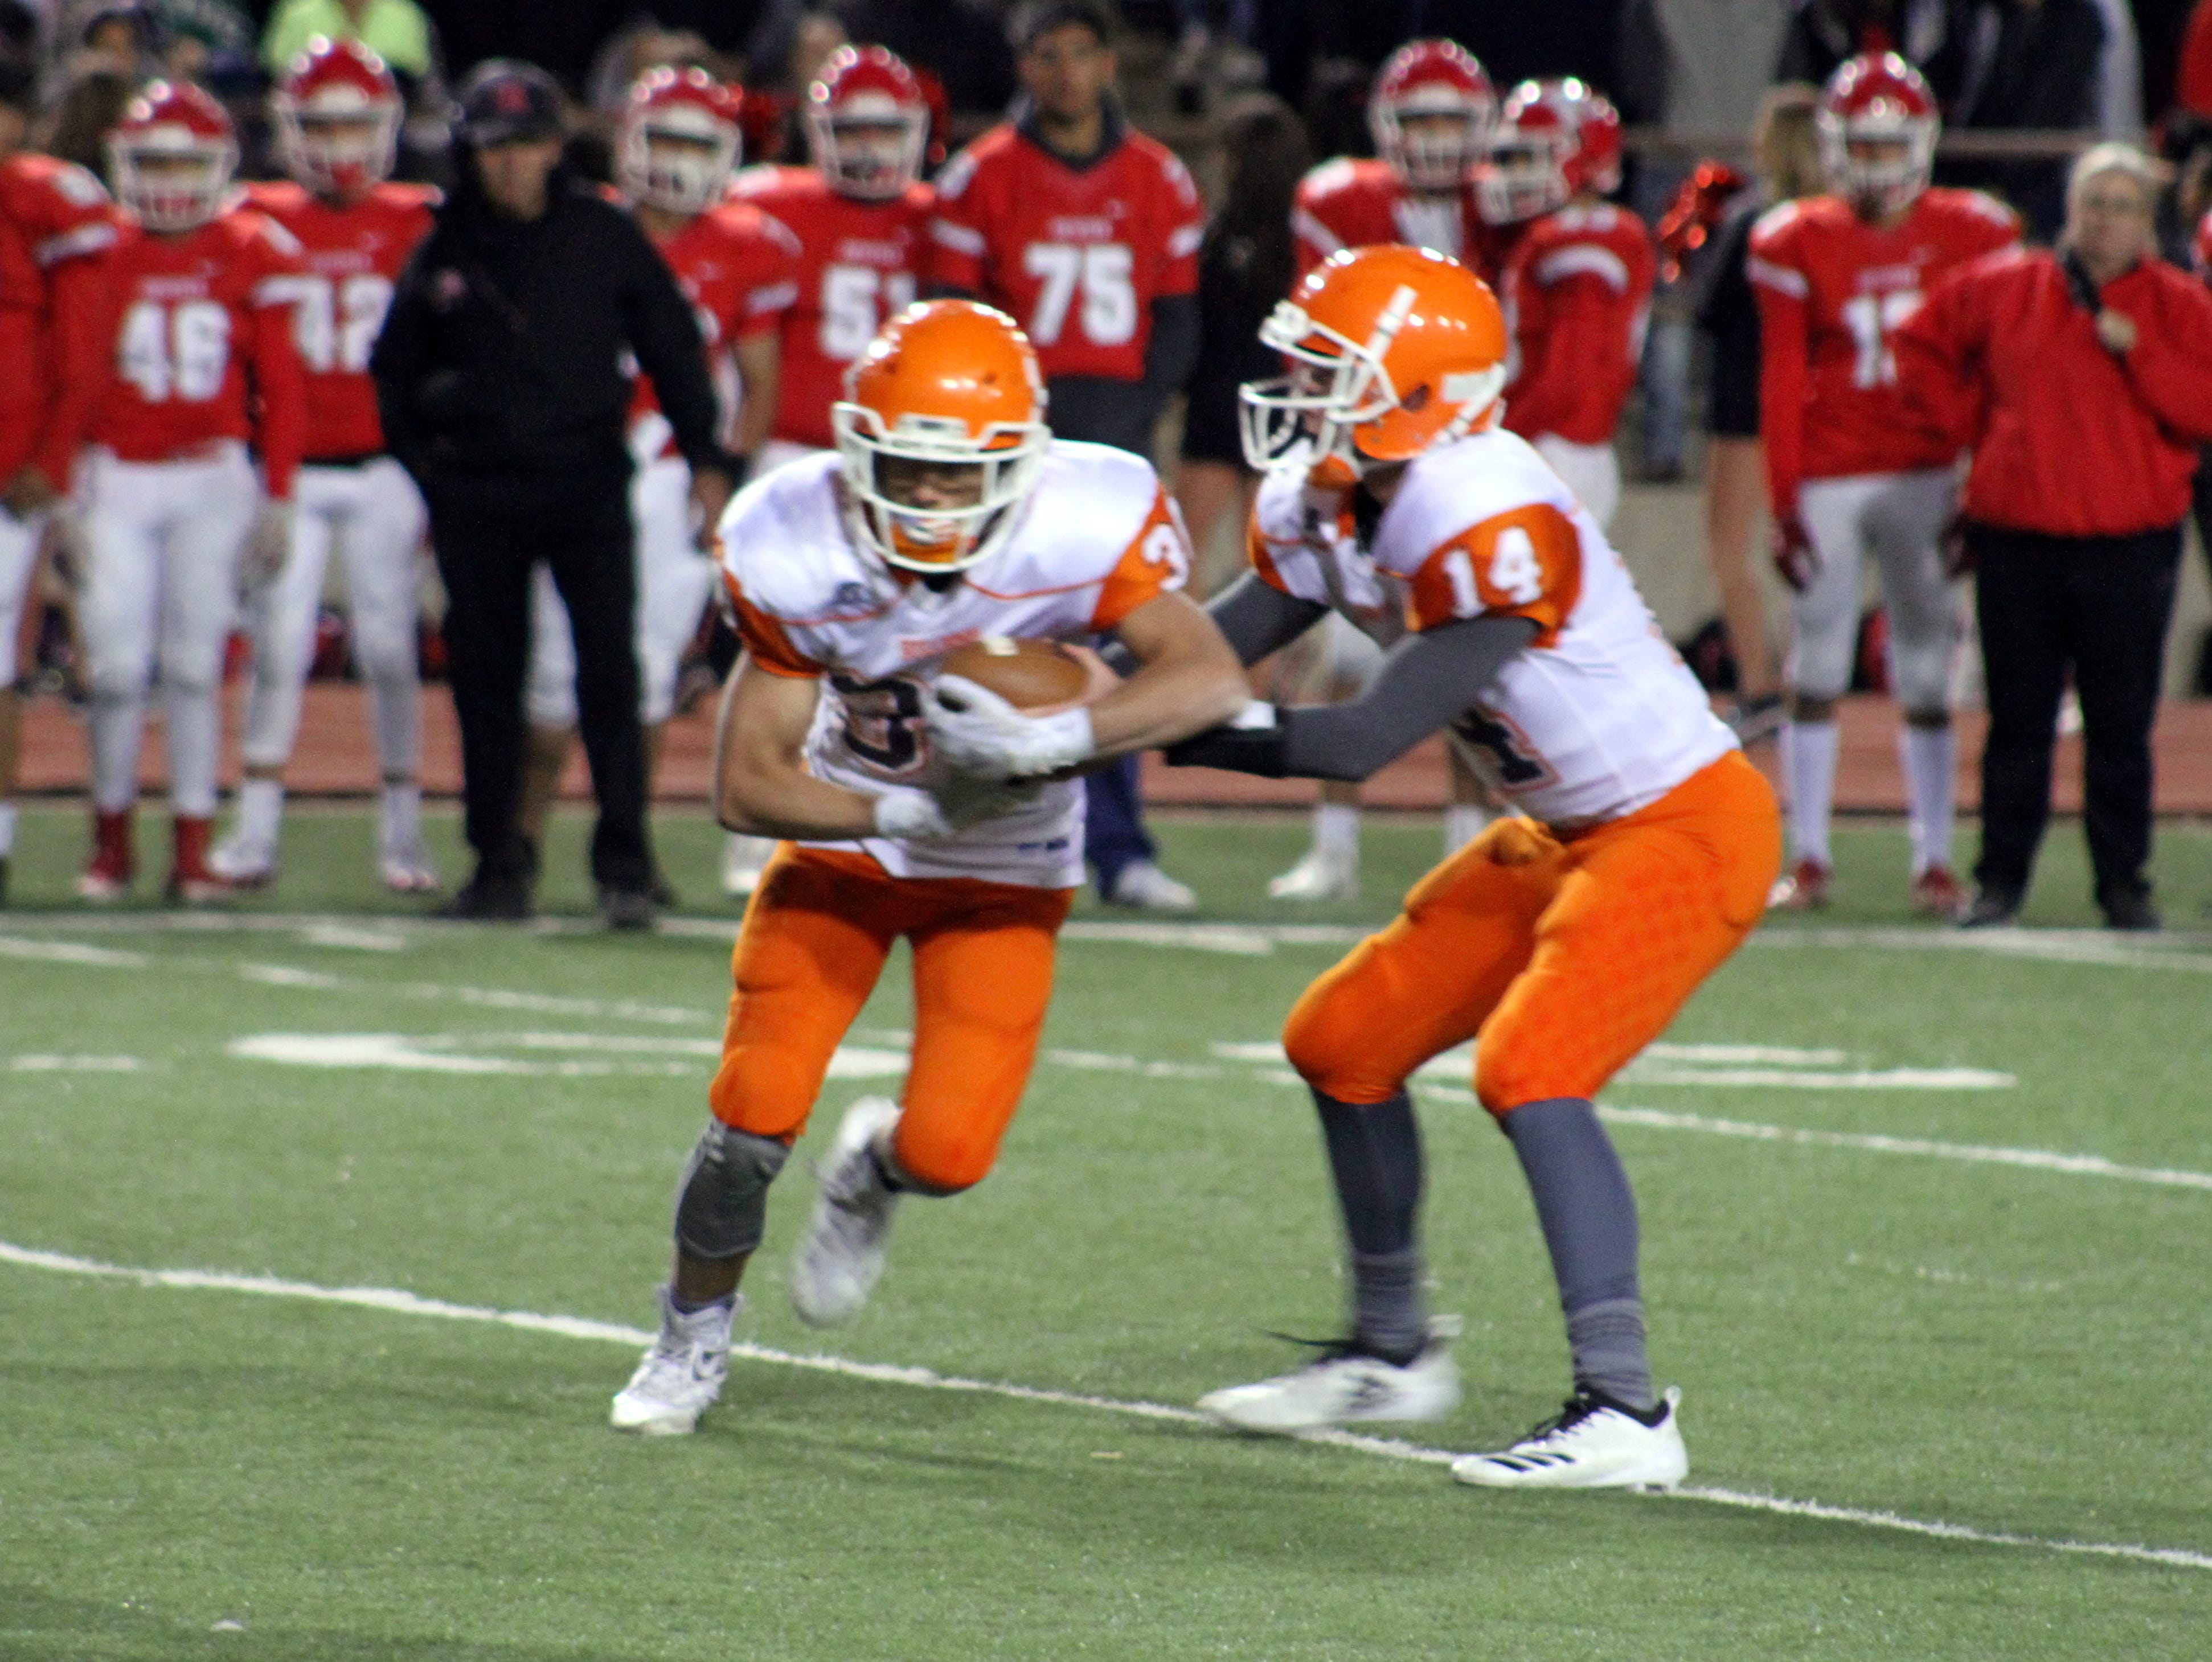 Trent Taylor (14) hands the ball off to Jagger Gonaghe (30) during Friday's Class 5A semifinal game. Both Artesia players were responsible for four touchdowns in the game.